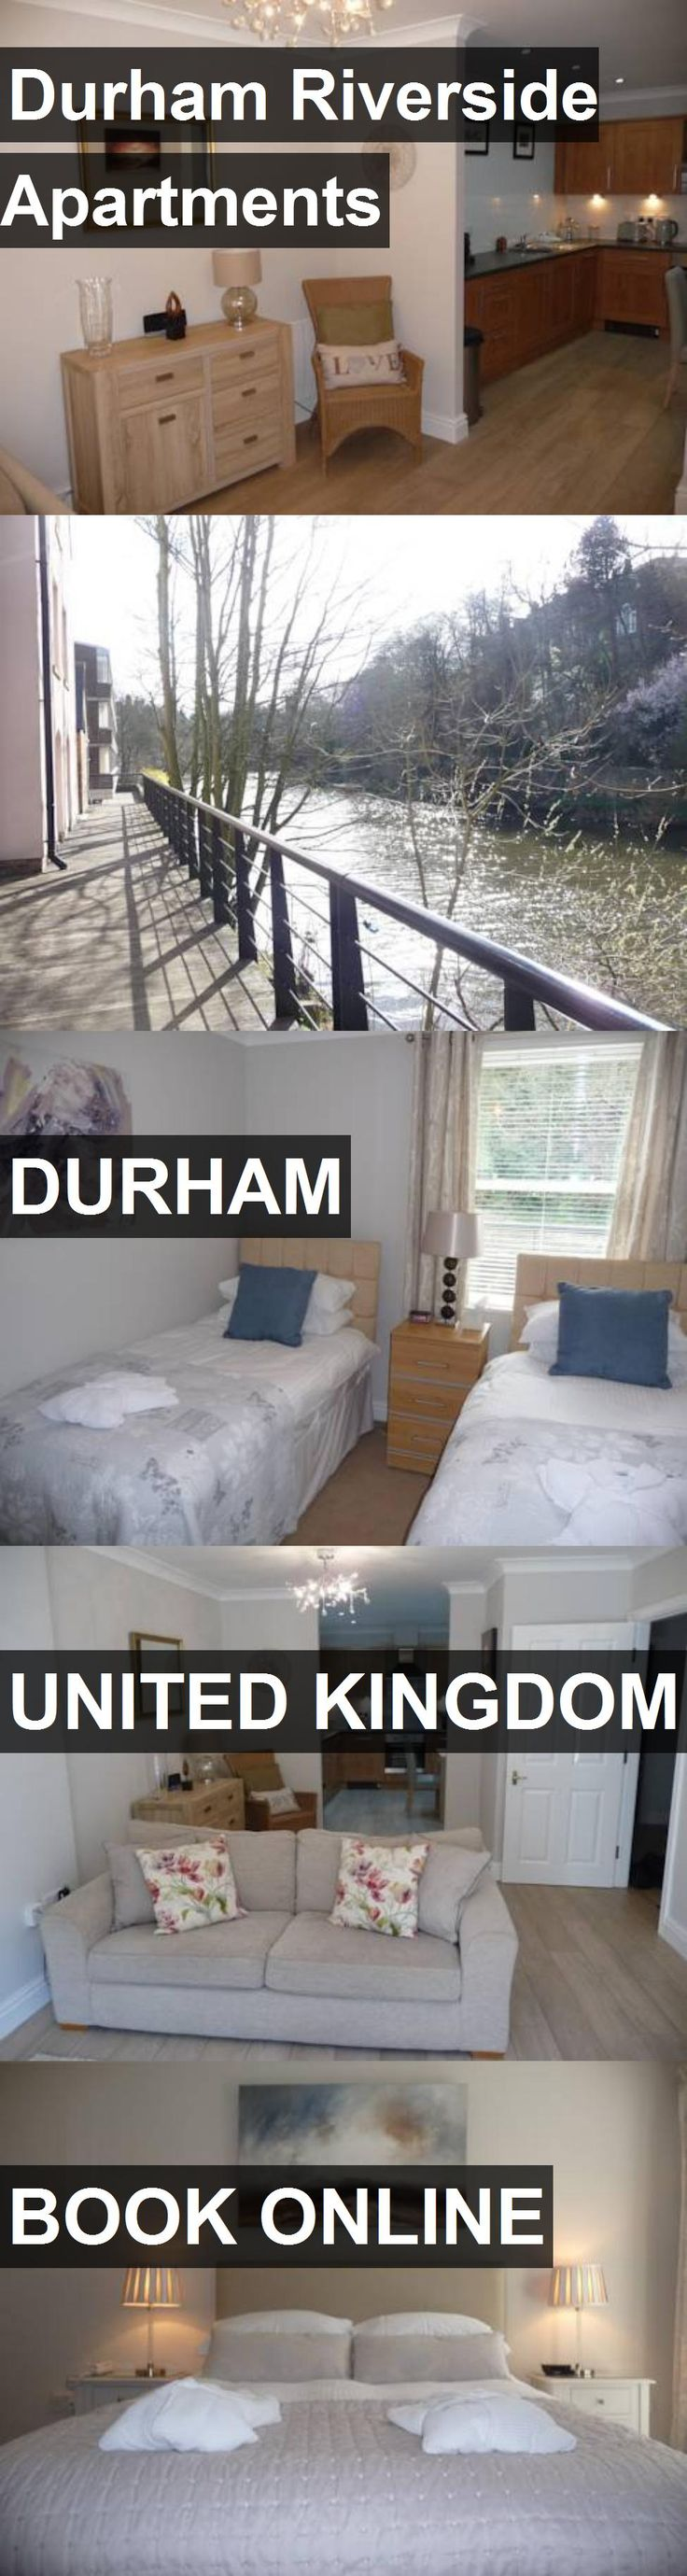 Durham Riverside Apartments in Durham, United Kingdom. For more information, photos, reviews and best prices please follow the link. #UnitedKingdom #Durham #travel #vacation #apartment